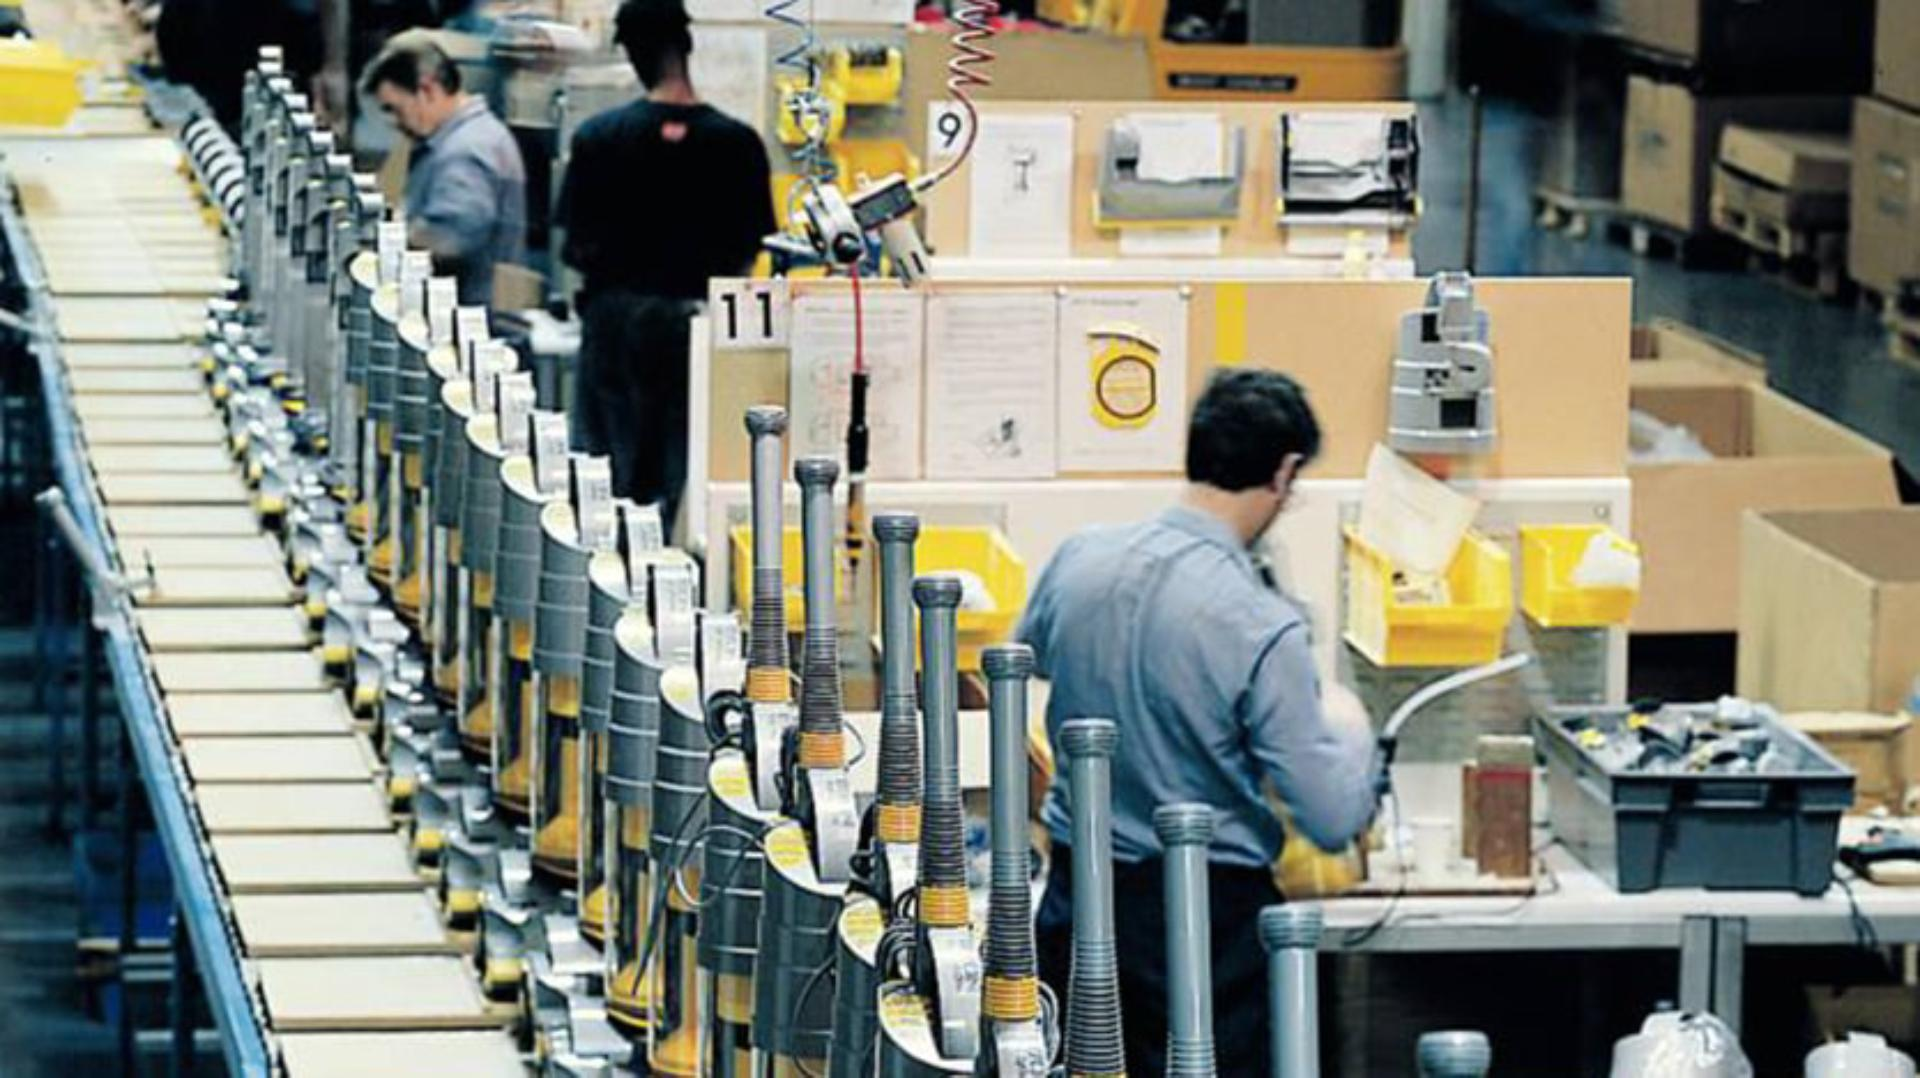 DCO1 production line showing Dyson machines and the packaging